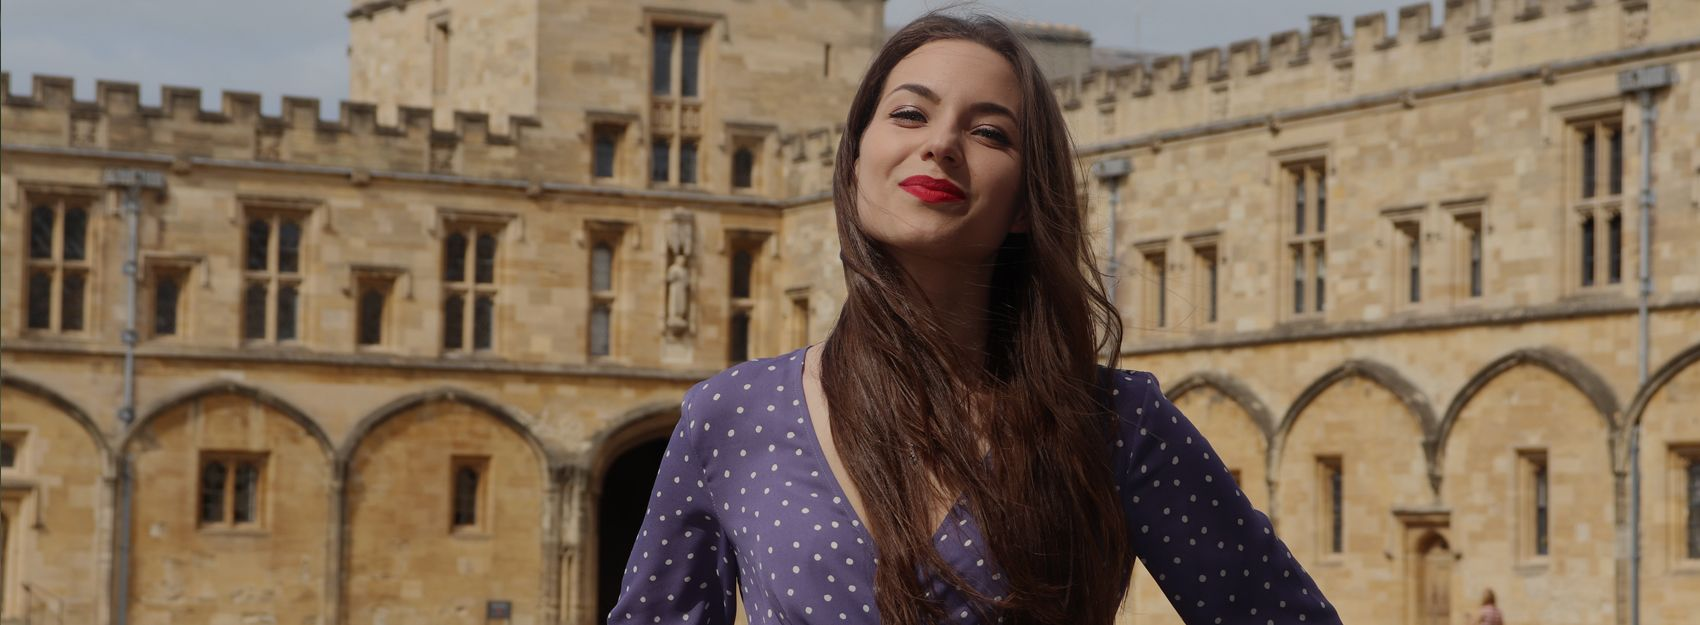 Student in blue dress standing confidently in front of Oxford University's Christ Church College